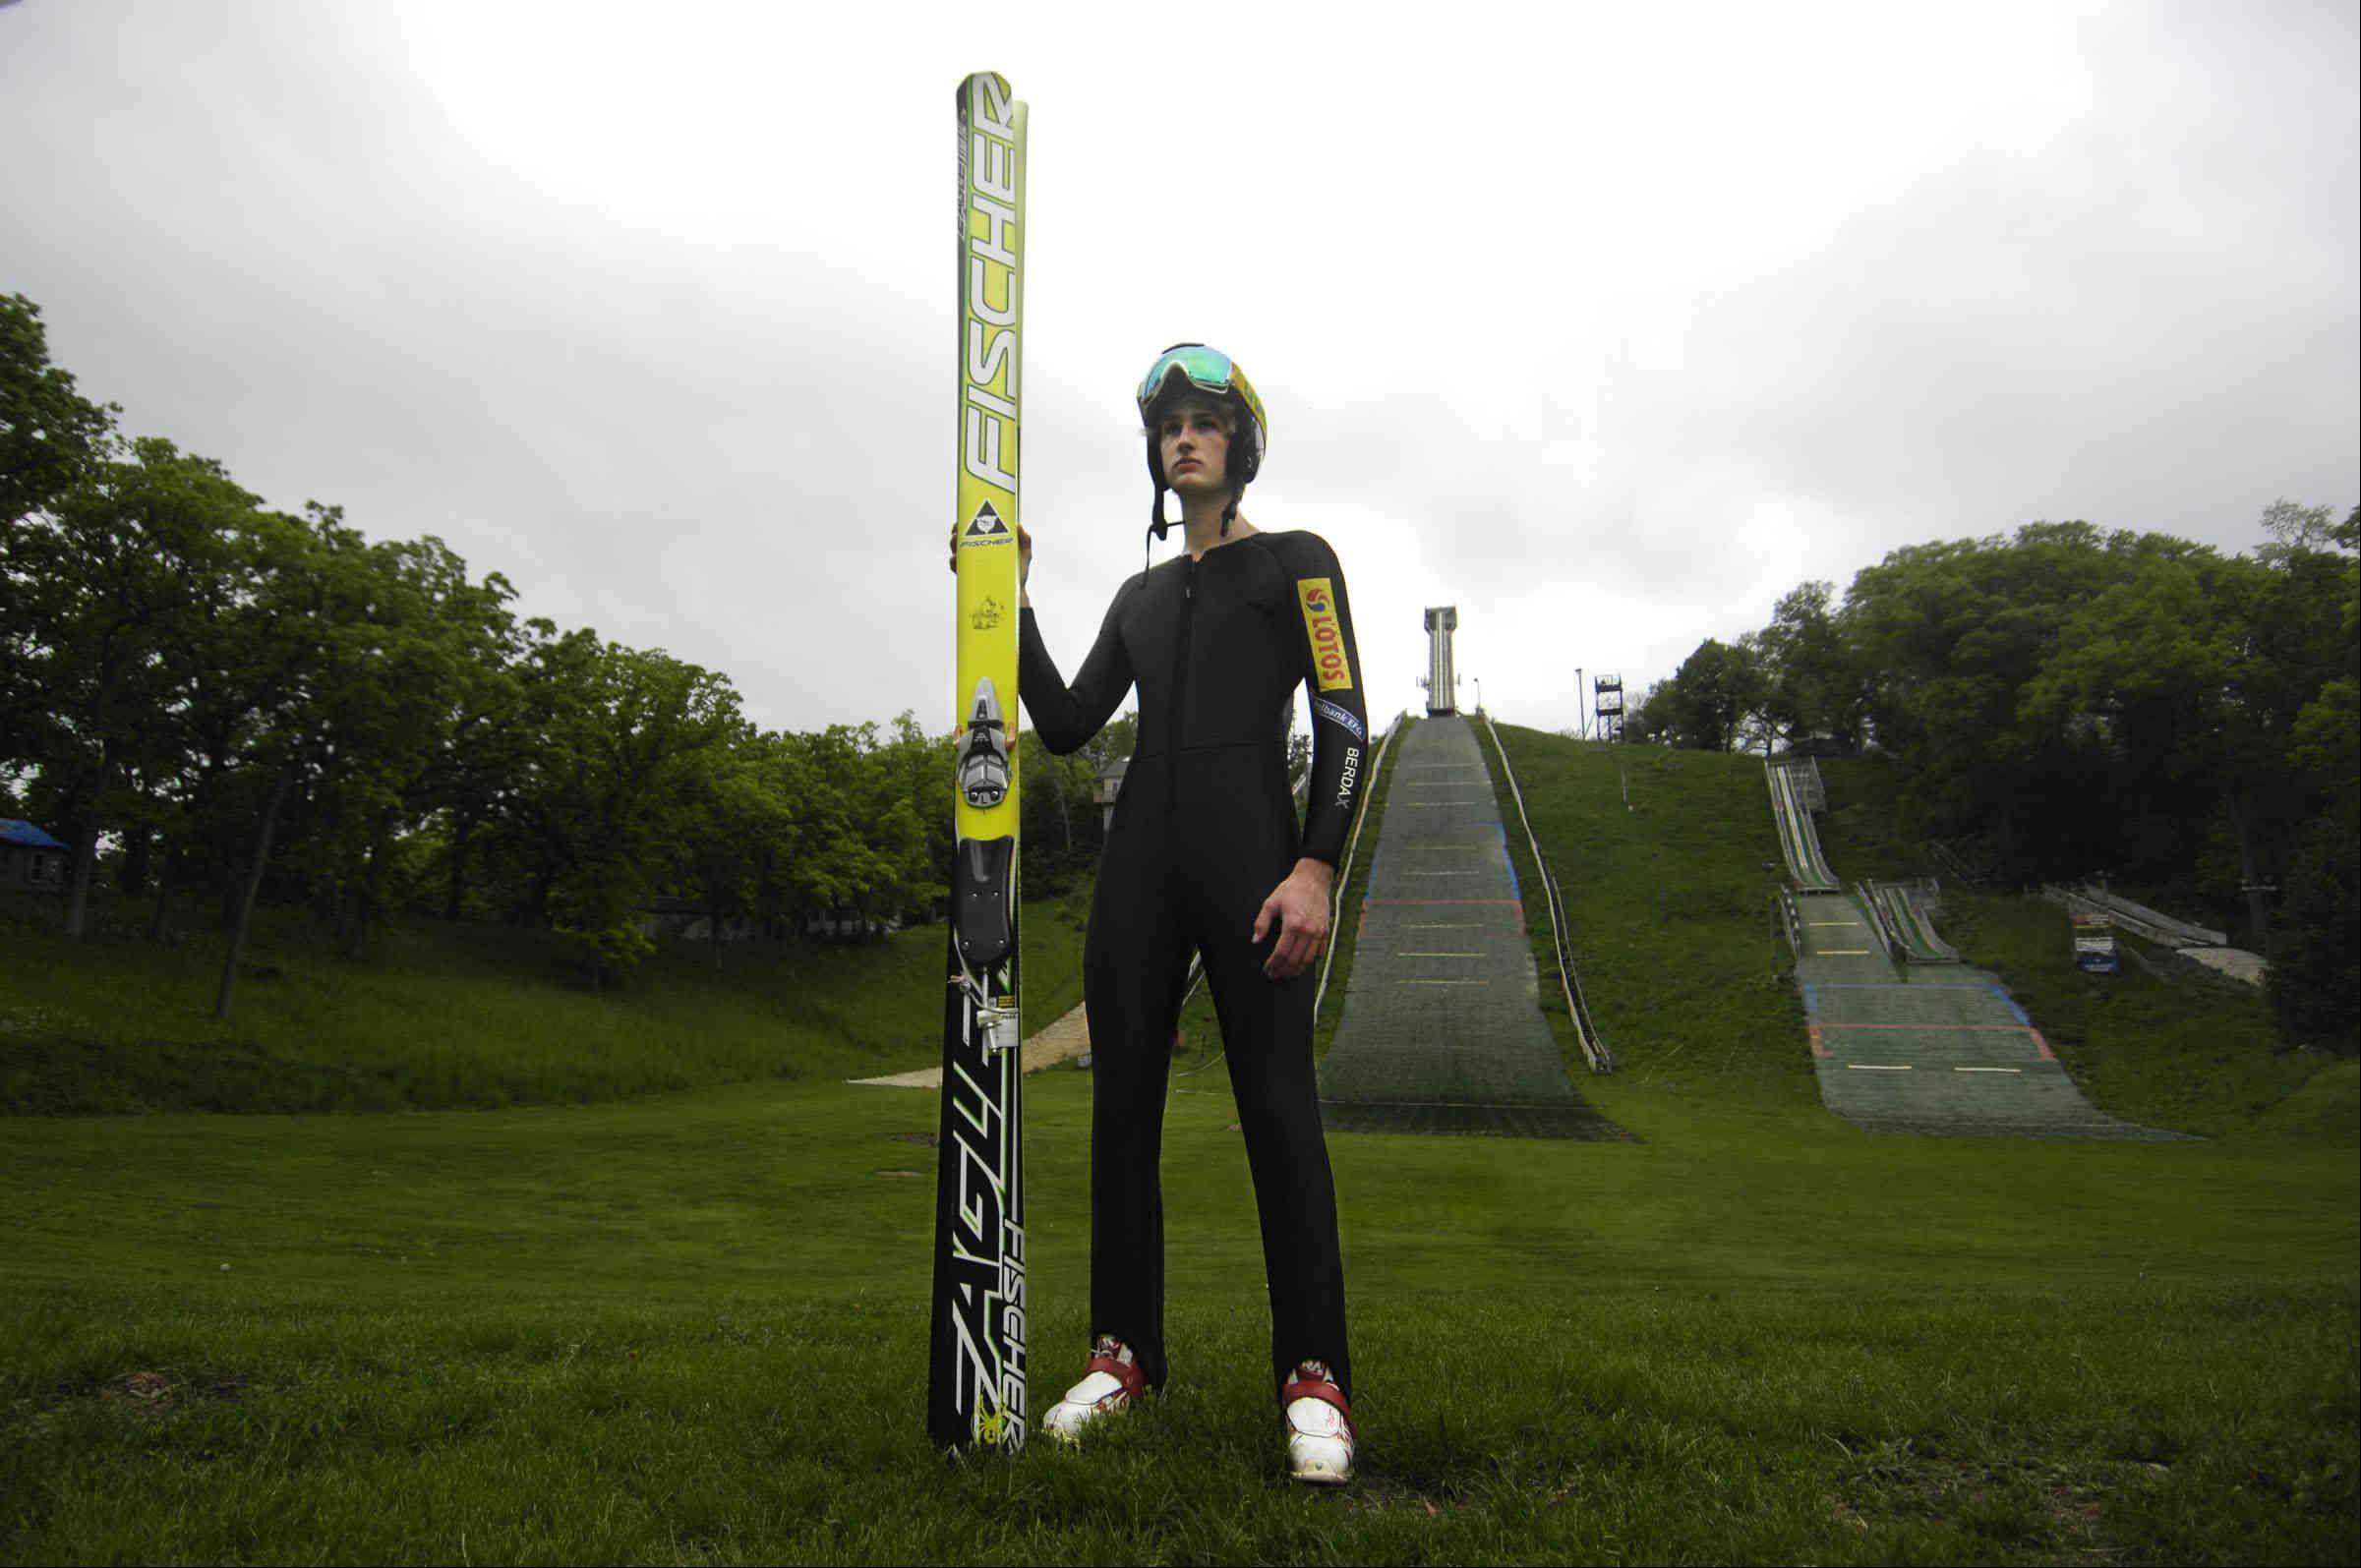 Wauconda teen among nation's elite ski jumpers